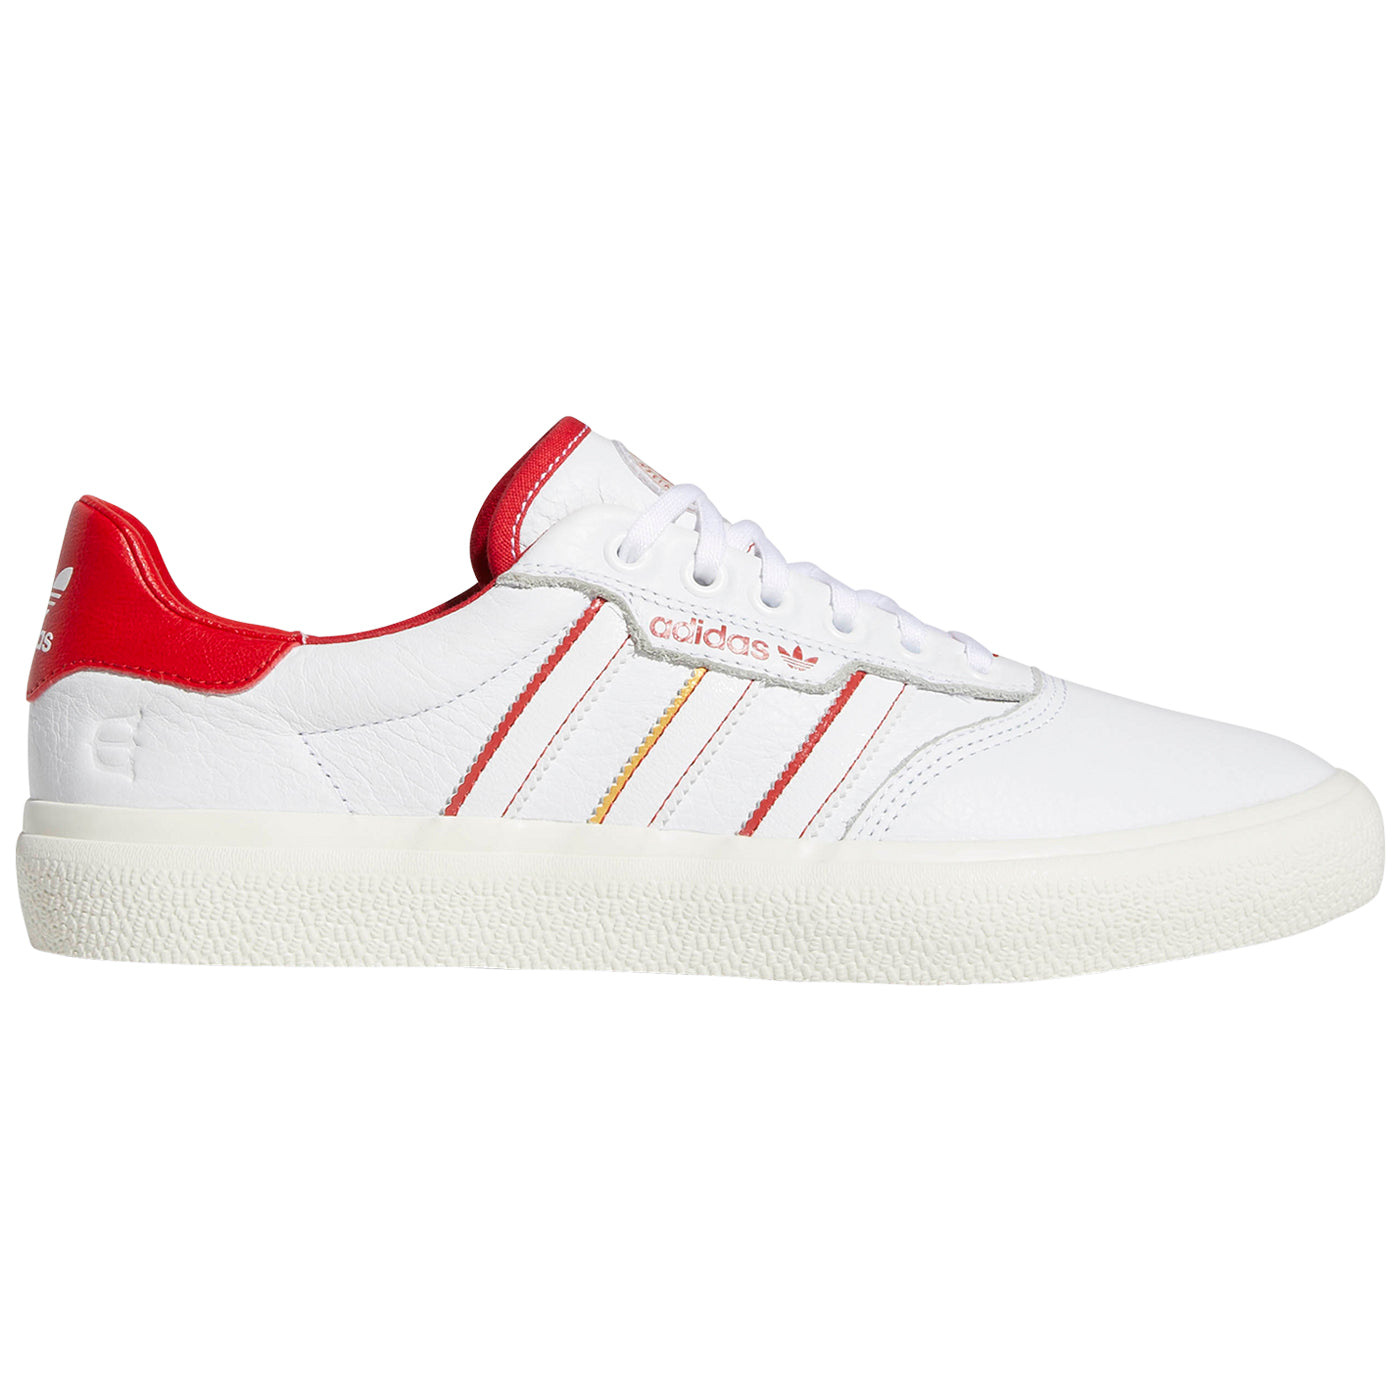 timeless design 6cda7 c7d53 Adidas x Evisen 3MC Shoes - Footwear White  Scarlet  Gold Metallic